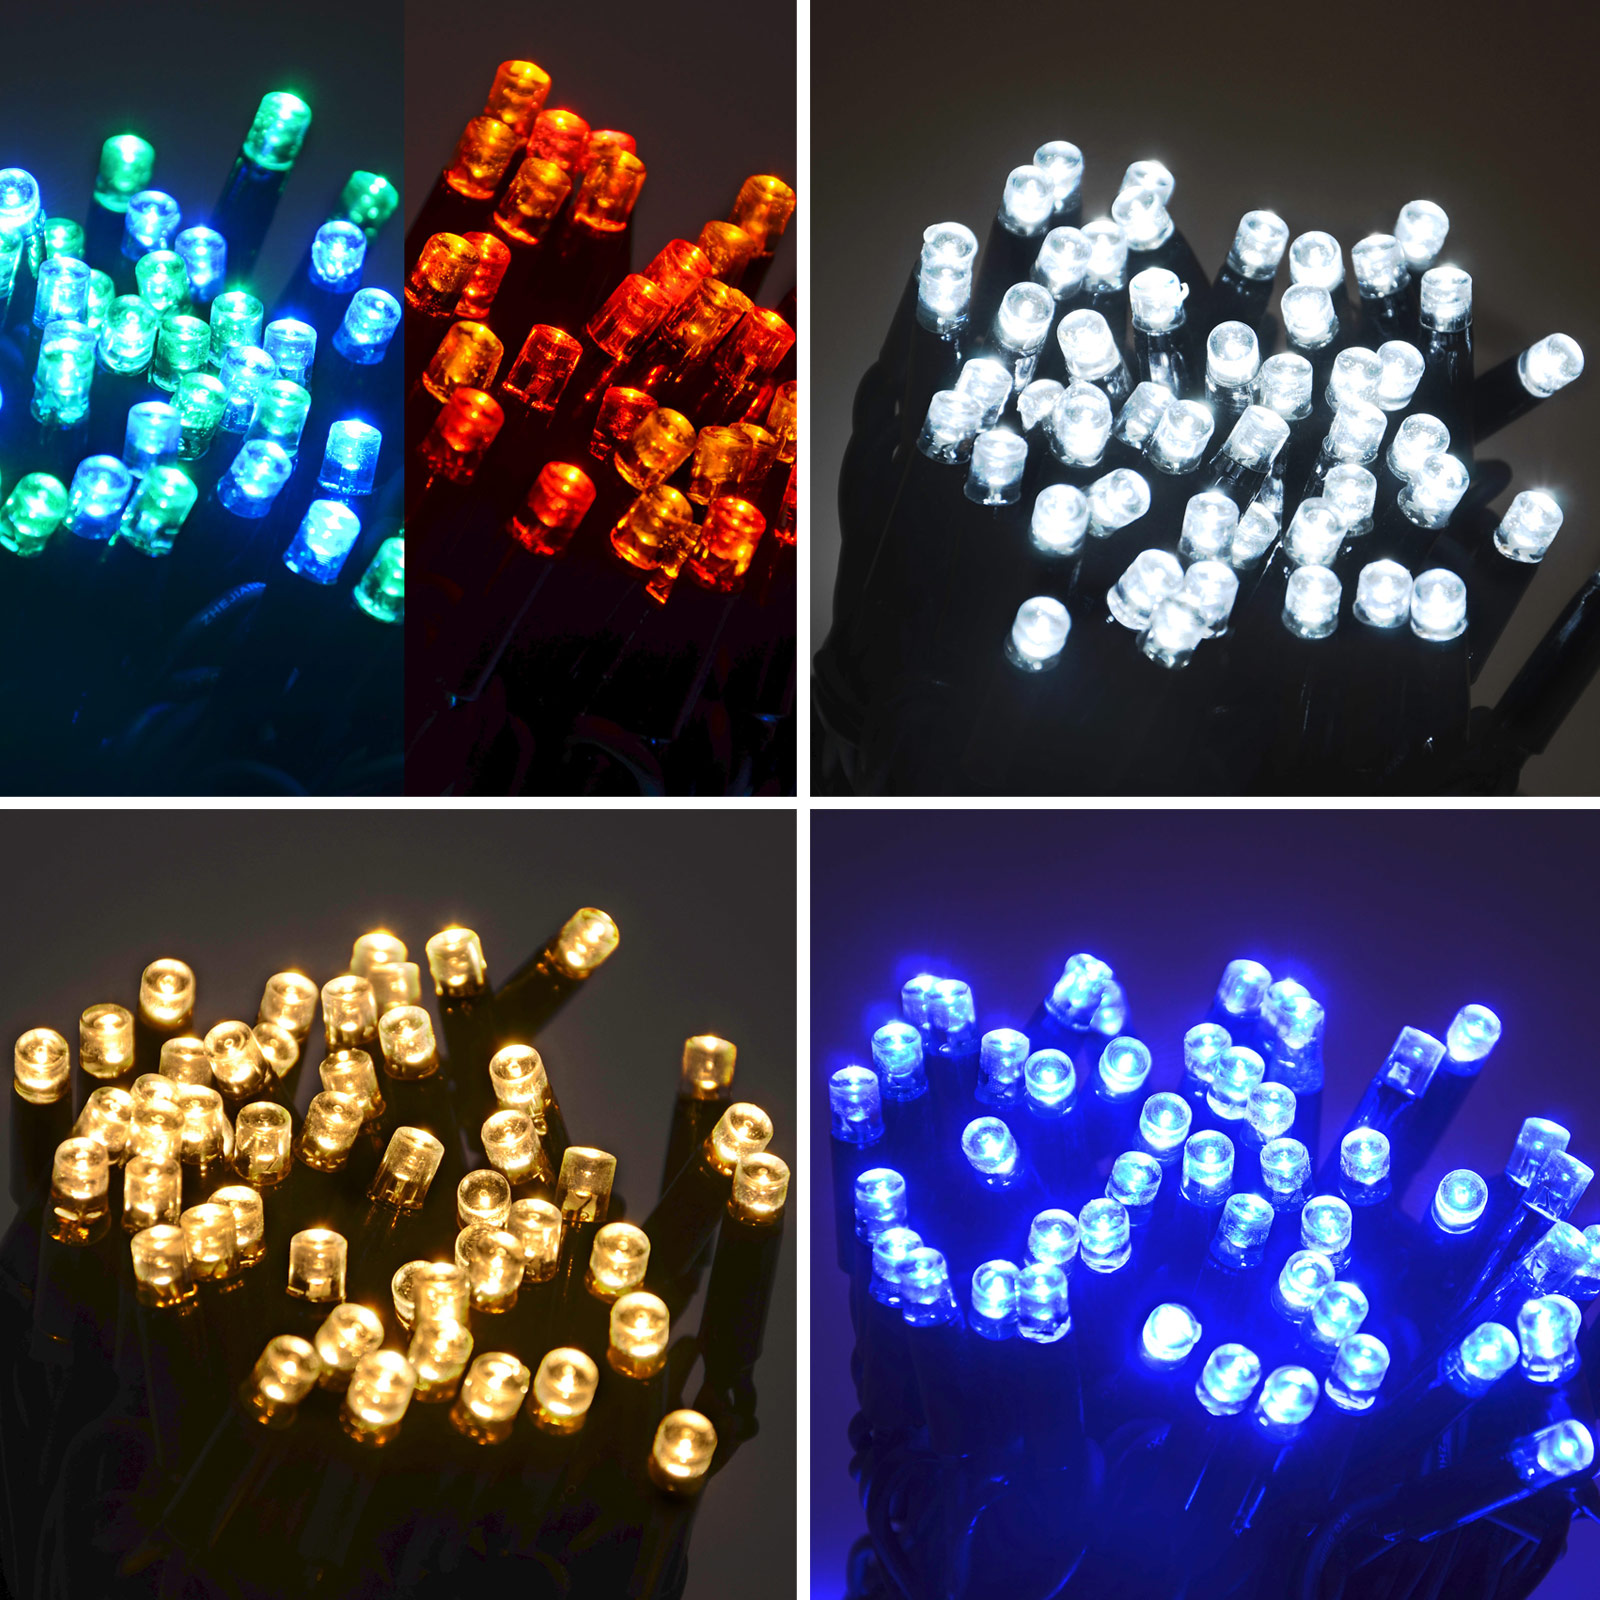 Mains String Garden Lights : 100 LED String Lights (10m) Connectable Waterproof Outdoor Christmas Fairy Mains eBay